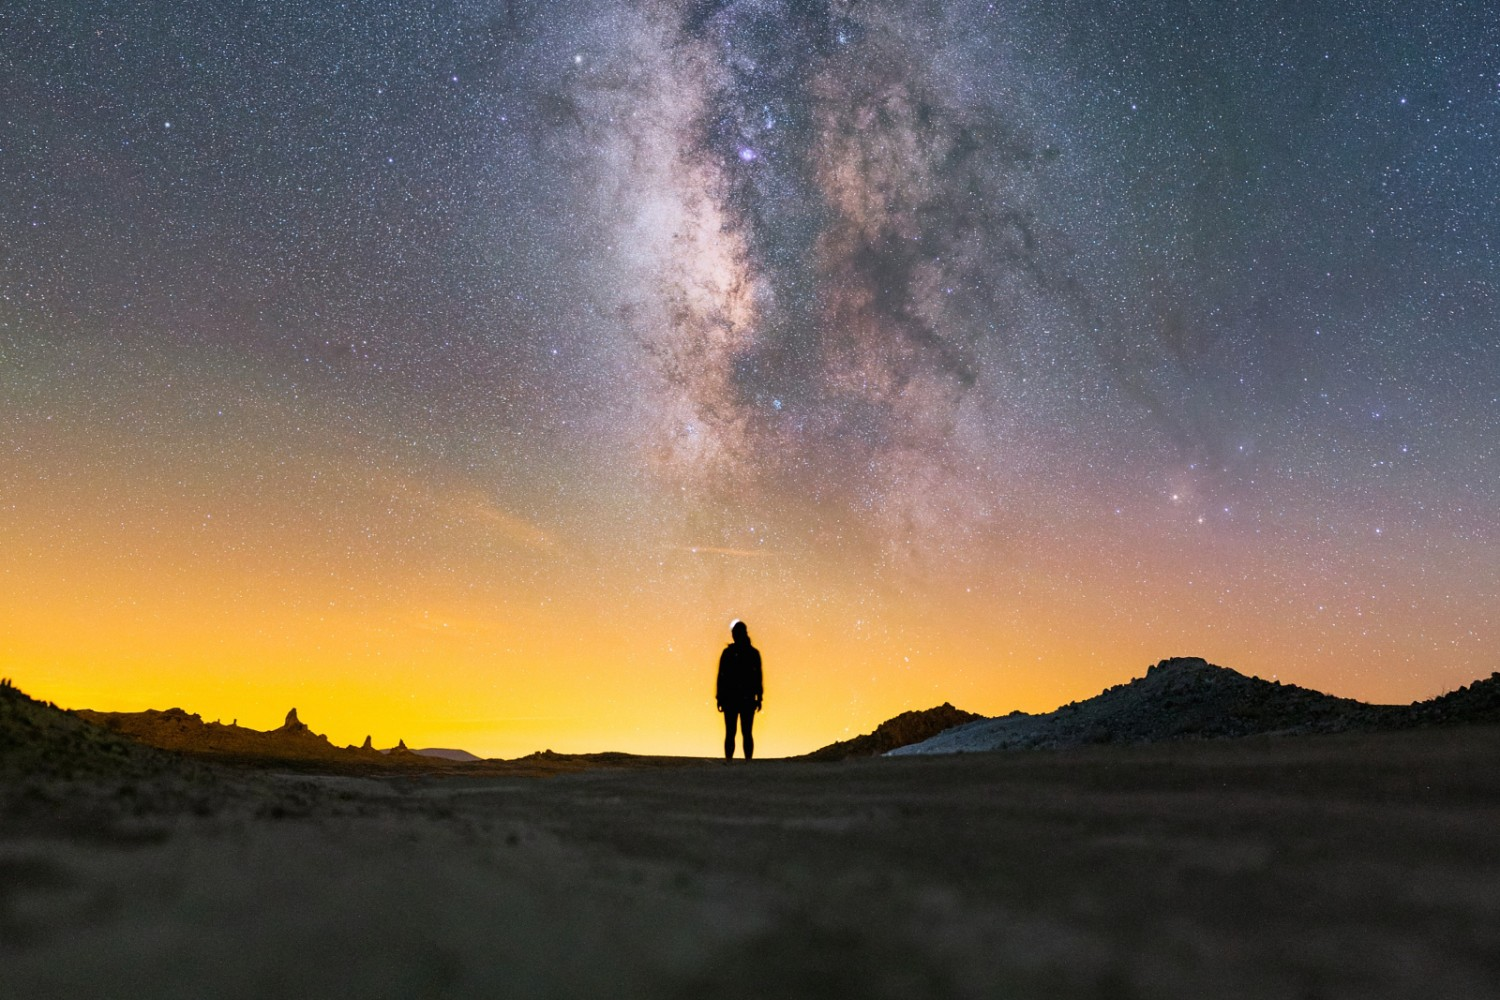 Video: How to Process a Milky Way Photo in Adobe Lightroom